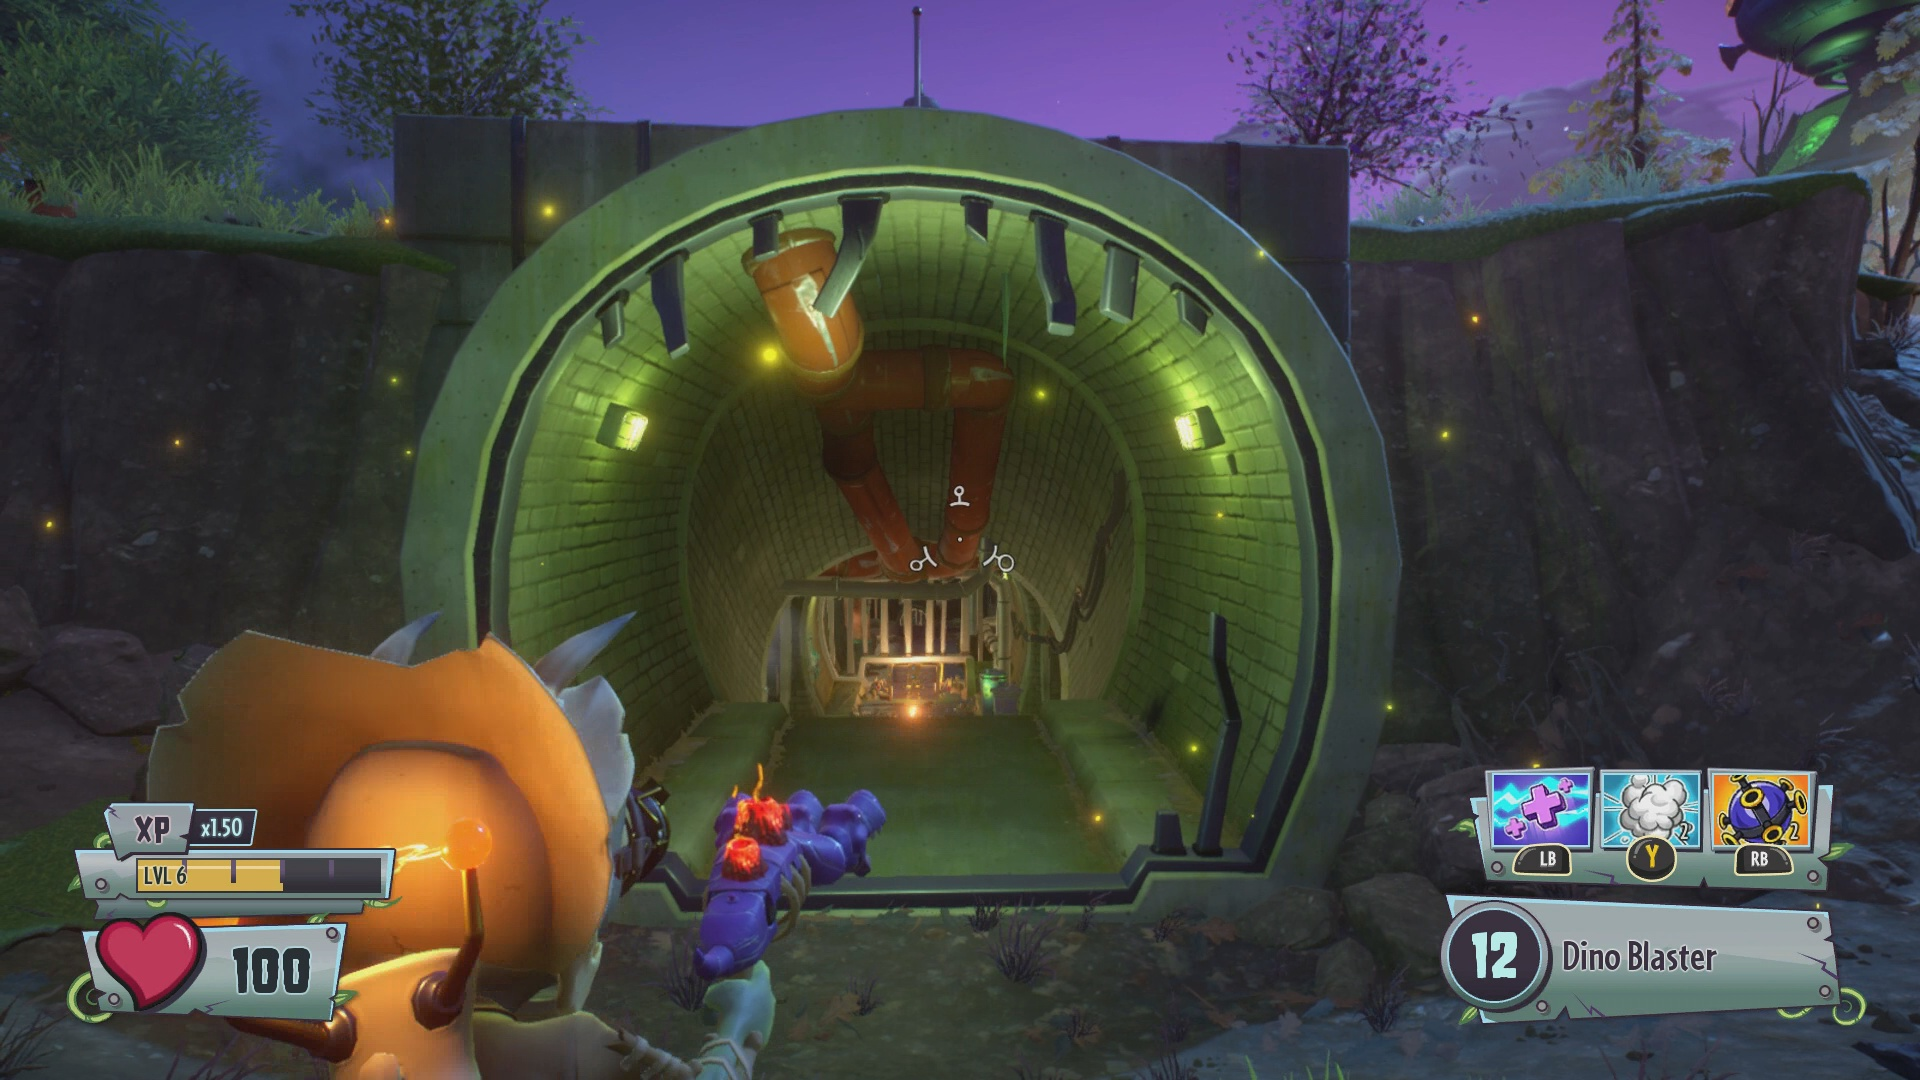 Plants Vs Zombies Garden Warfare 2 Free Coin Chests